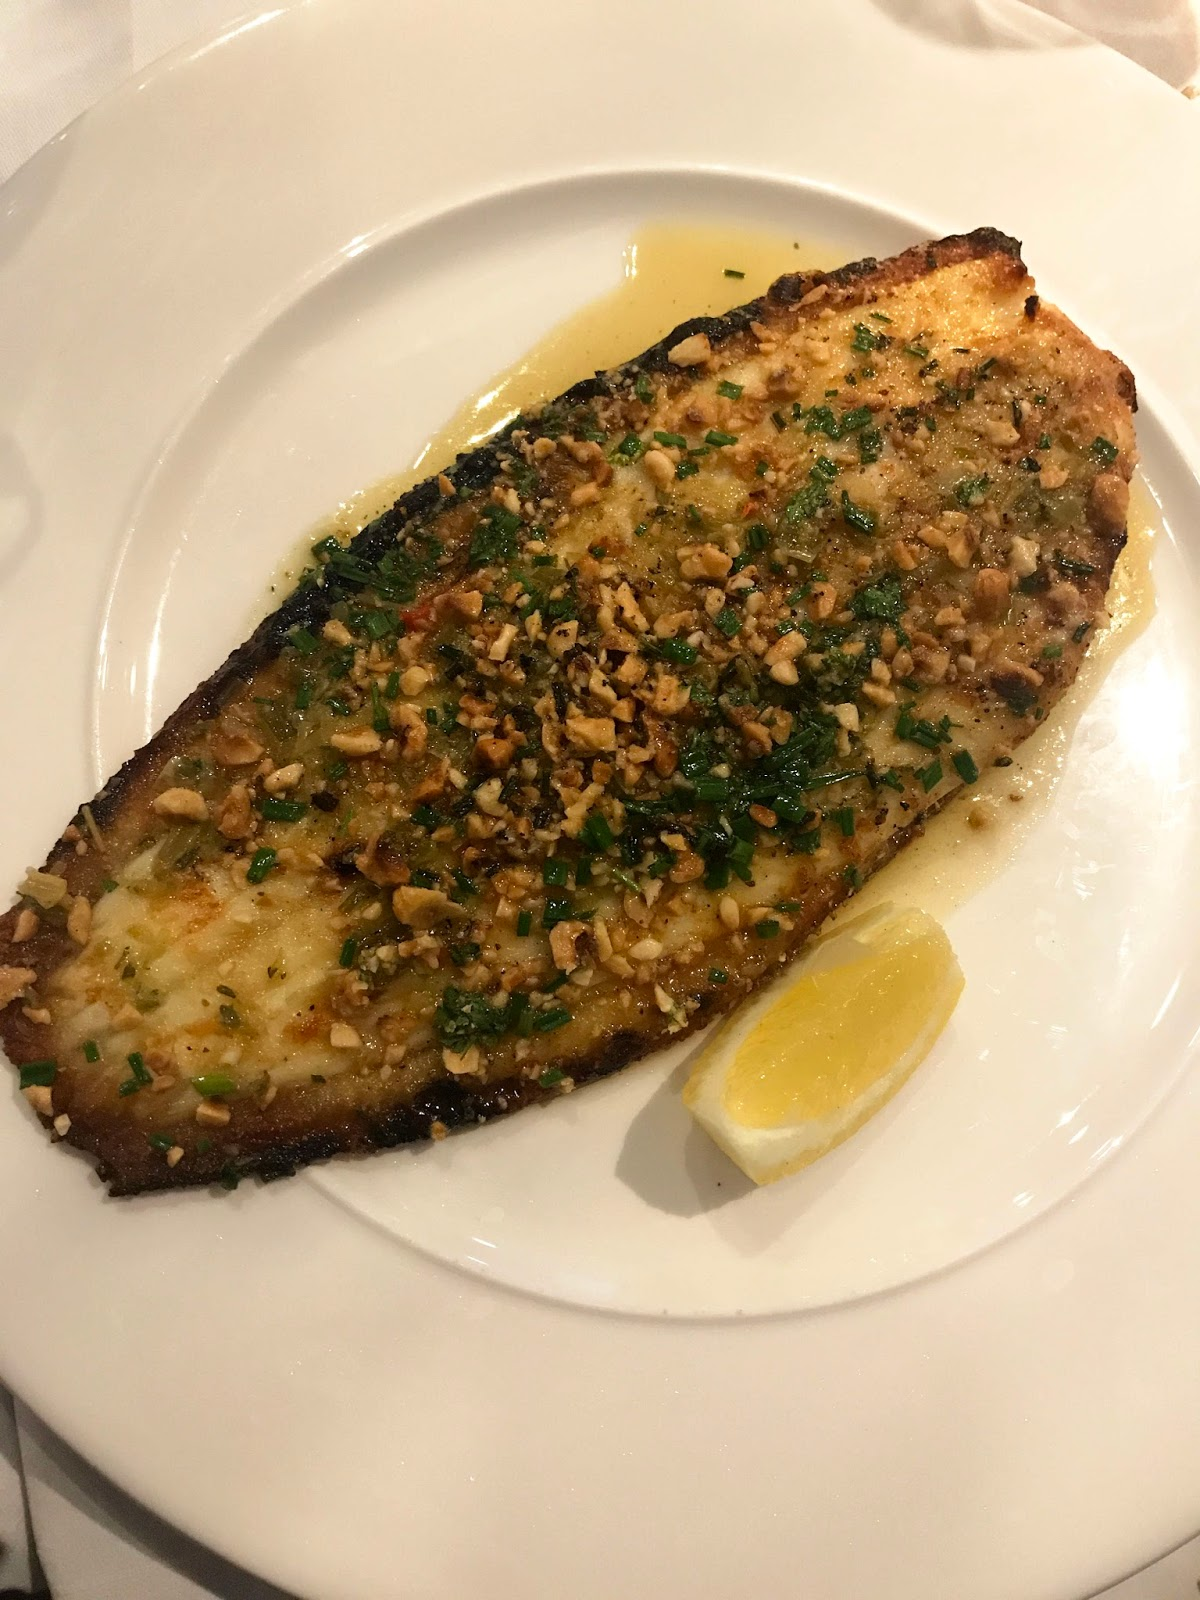 Stitch & Bear - Rachel's Cork - Grilled Dover Sole with gremolata